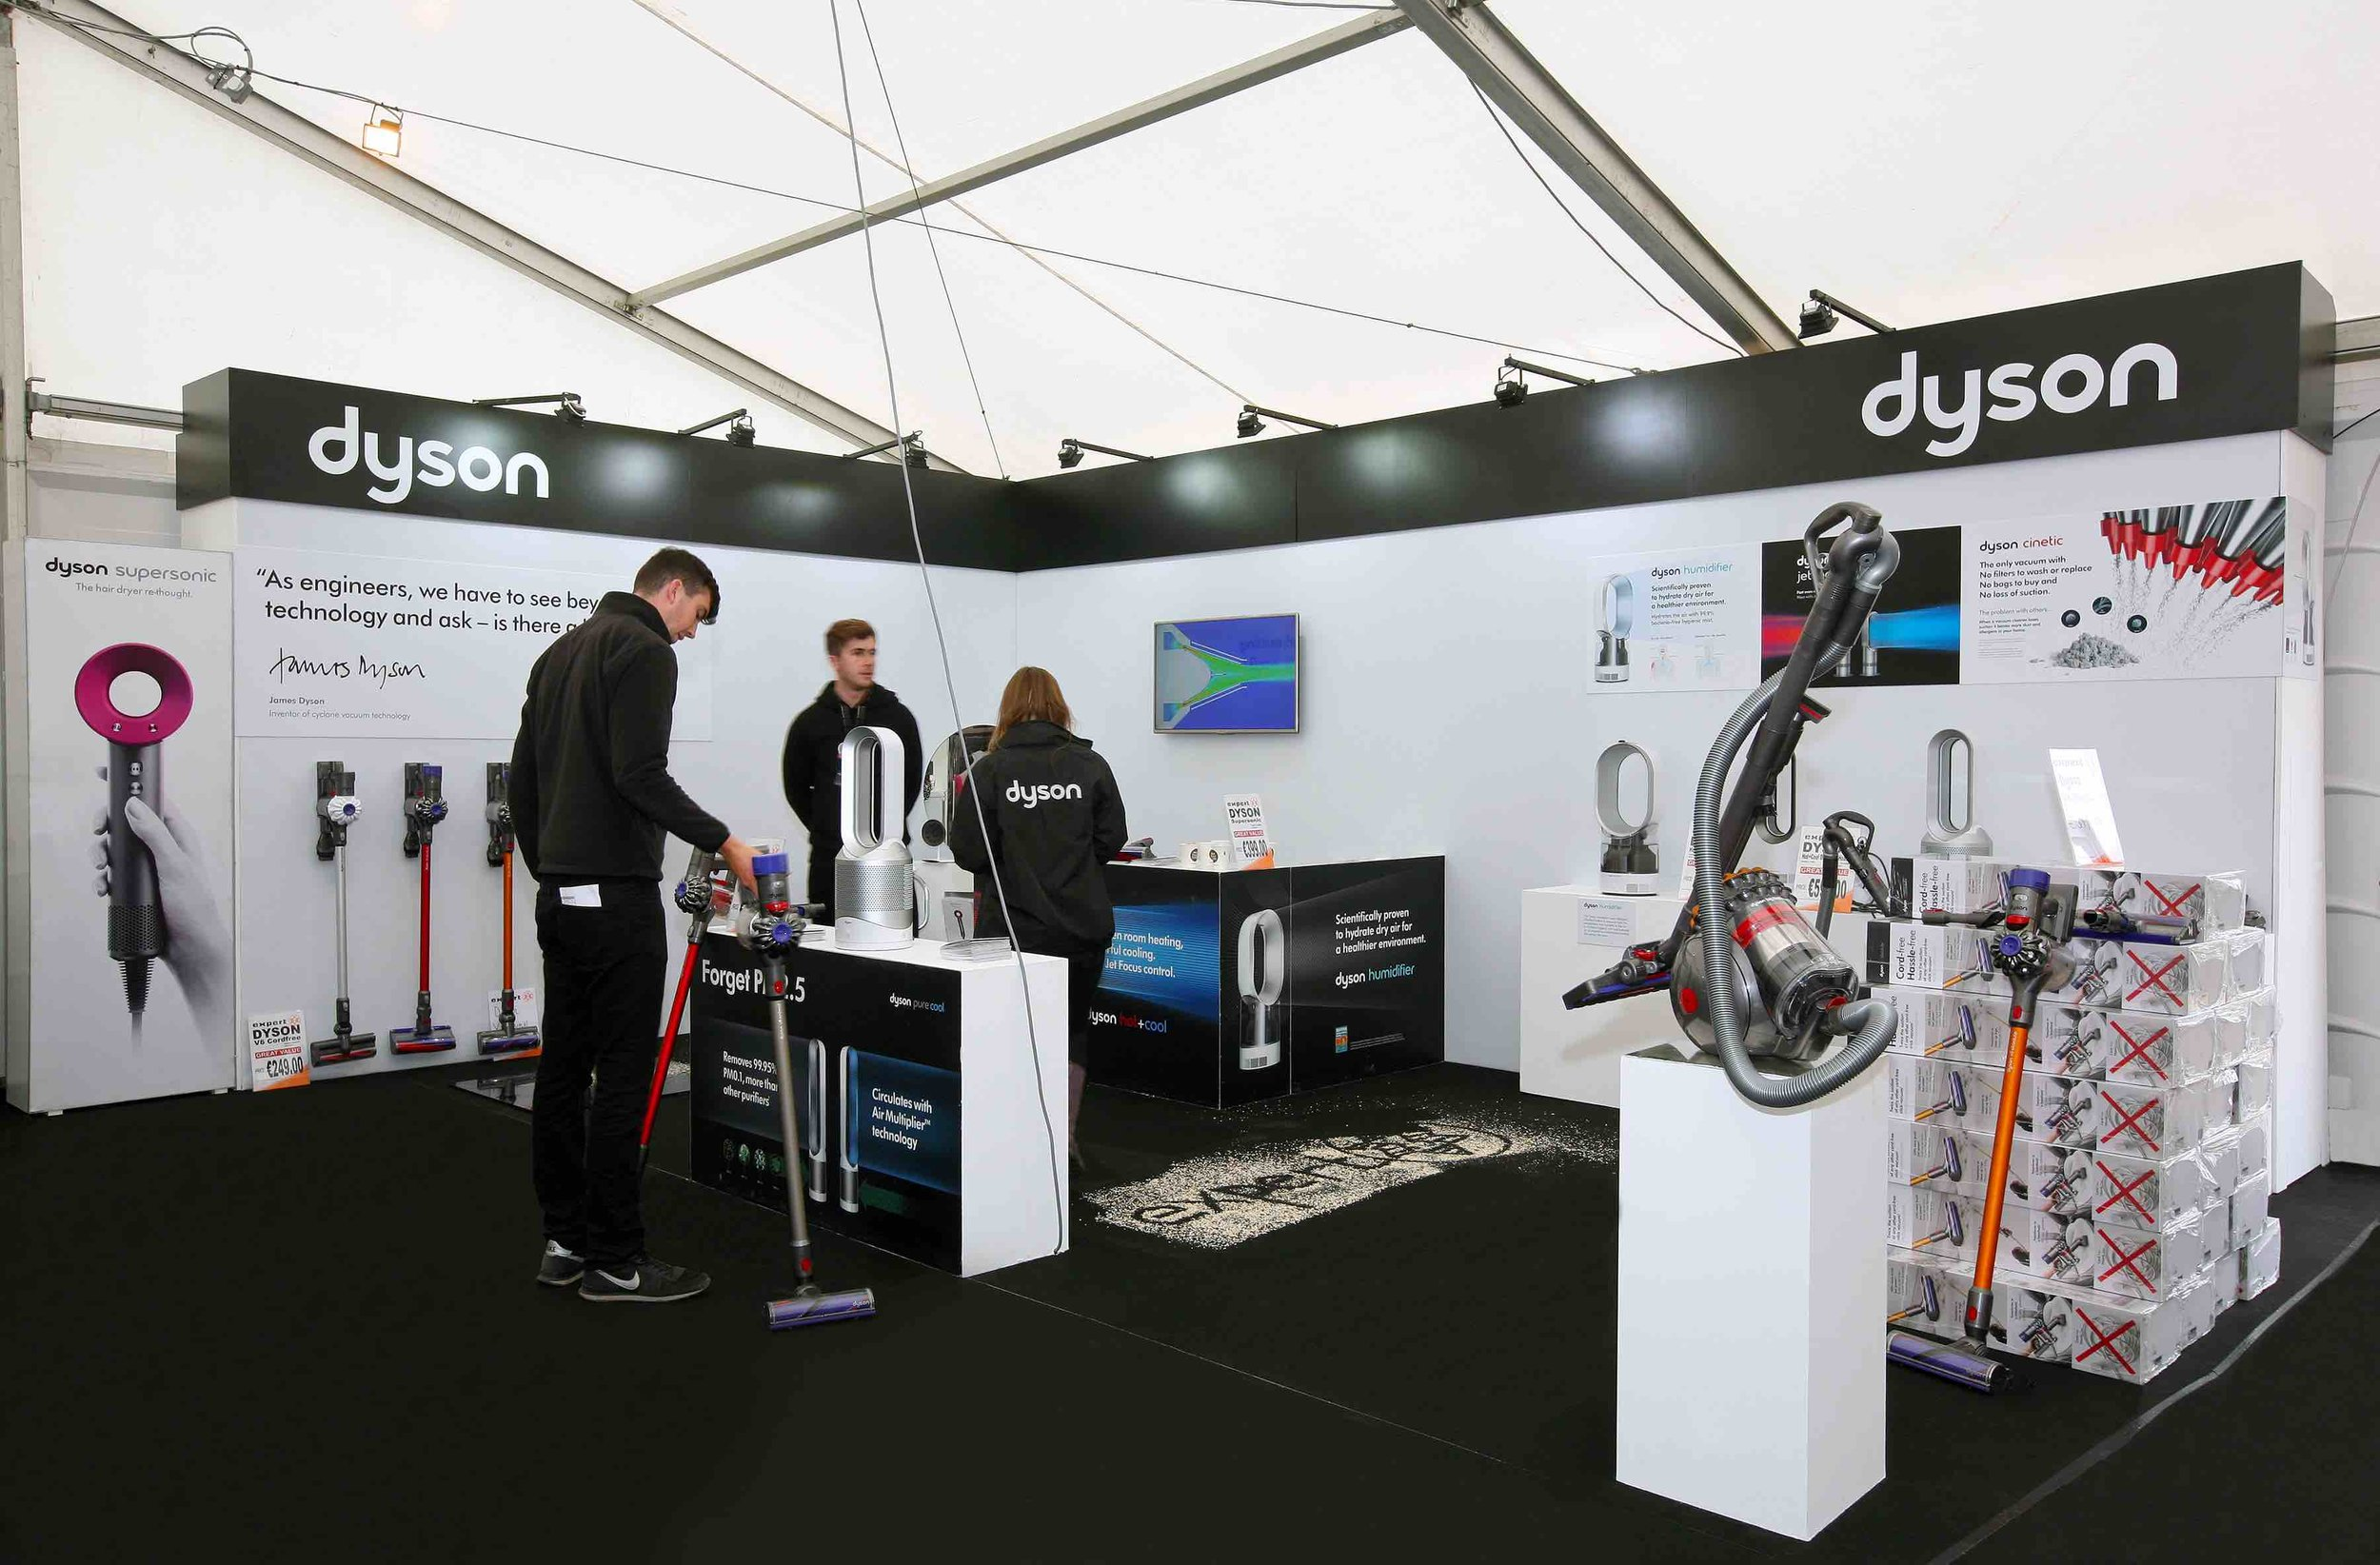 Dyson Exhibition Stand at The National Ploughing Championships 2017